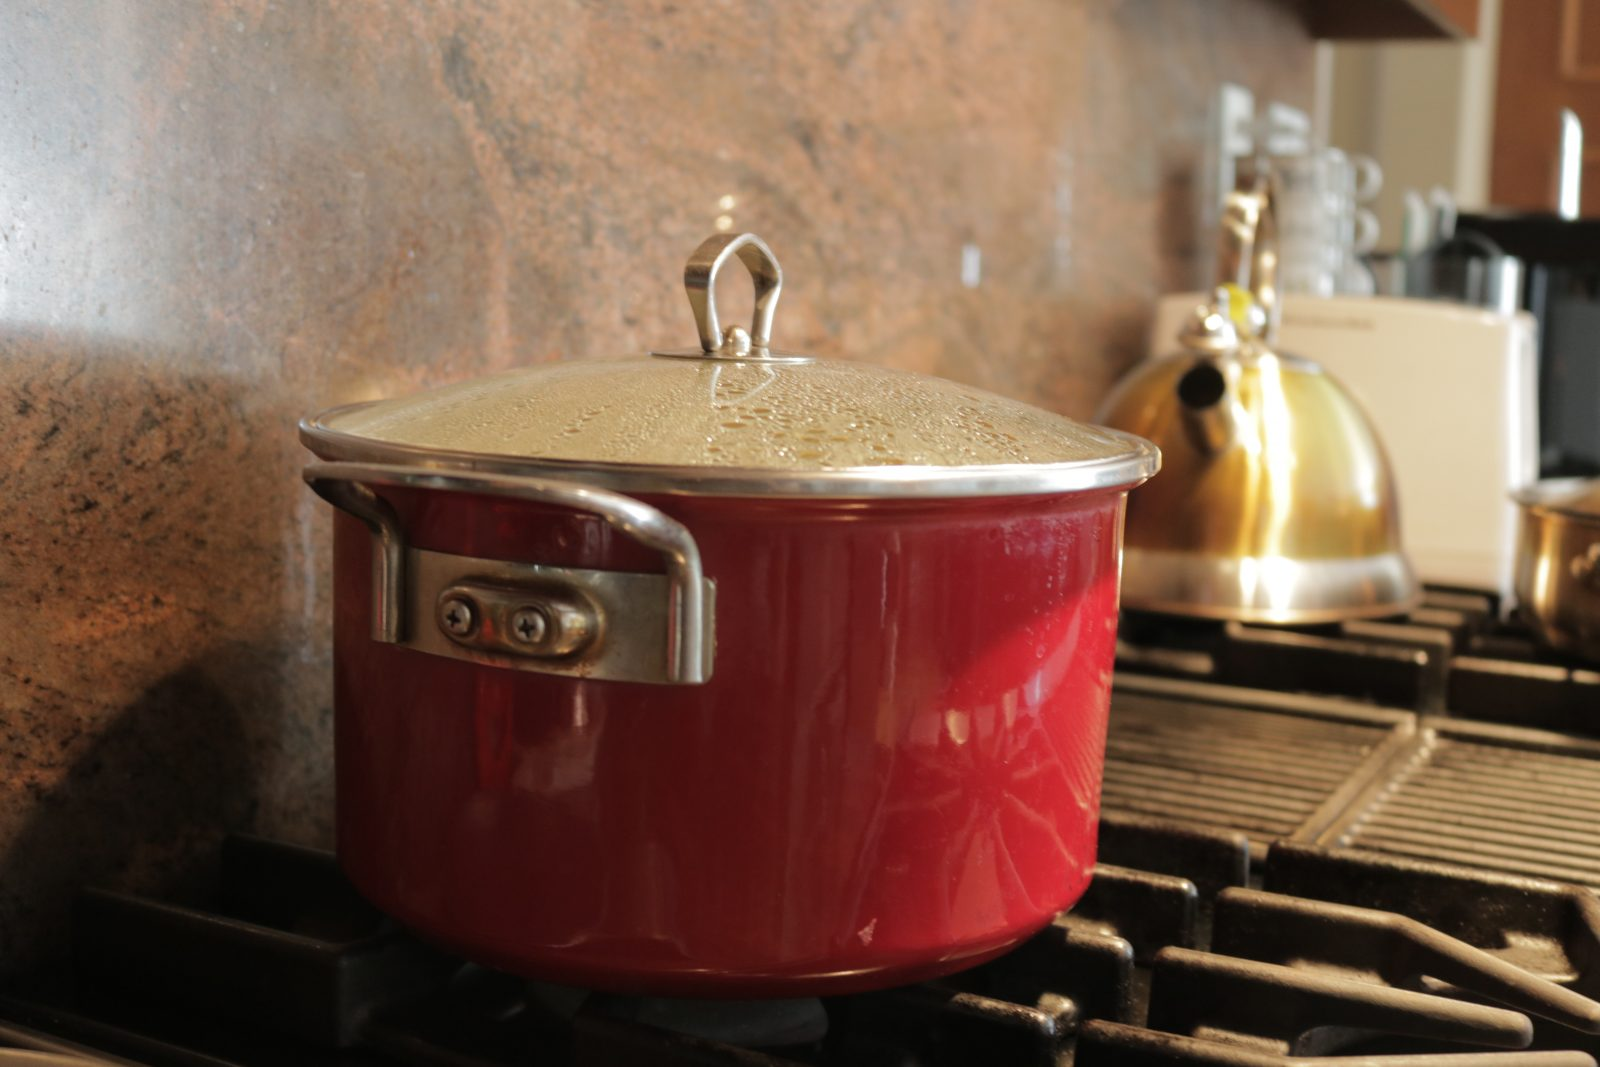 A red pot on a stove.